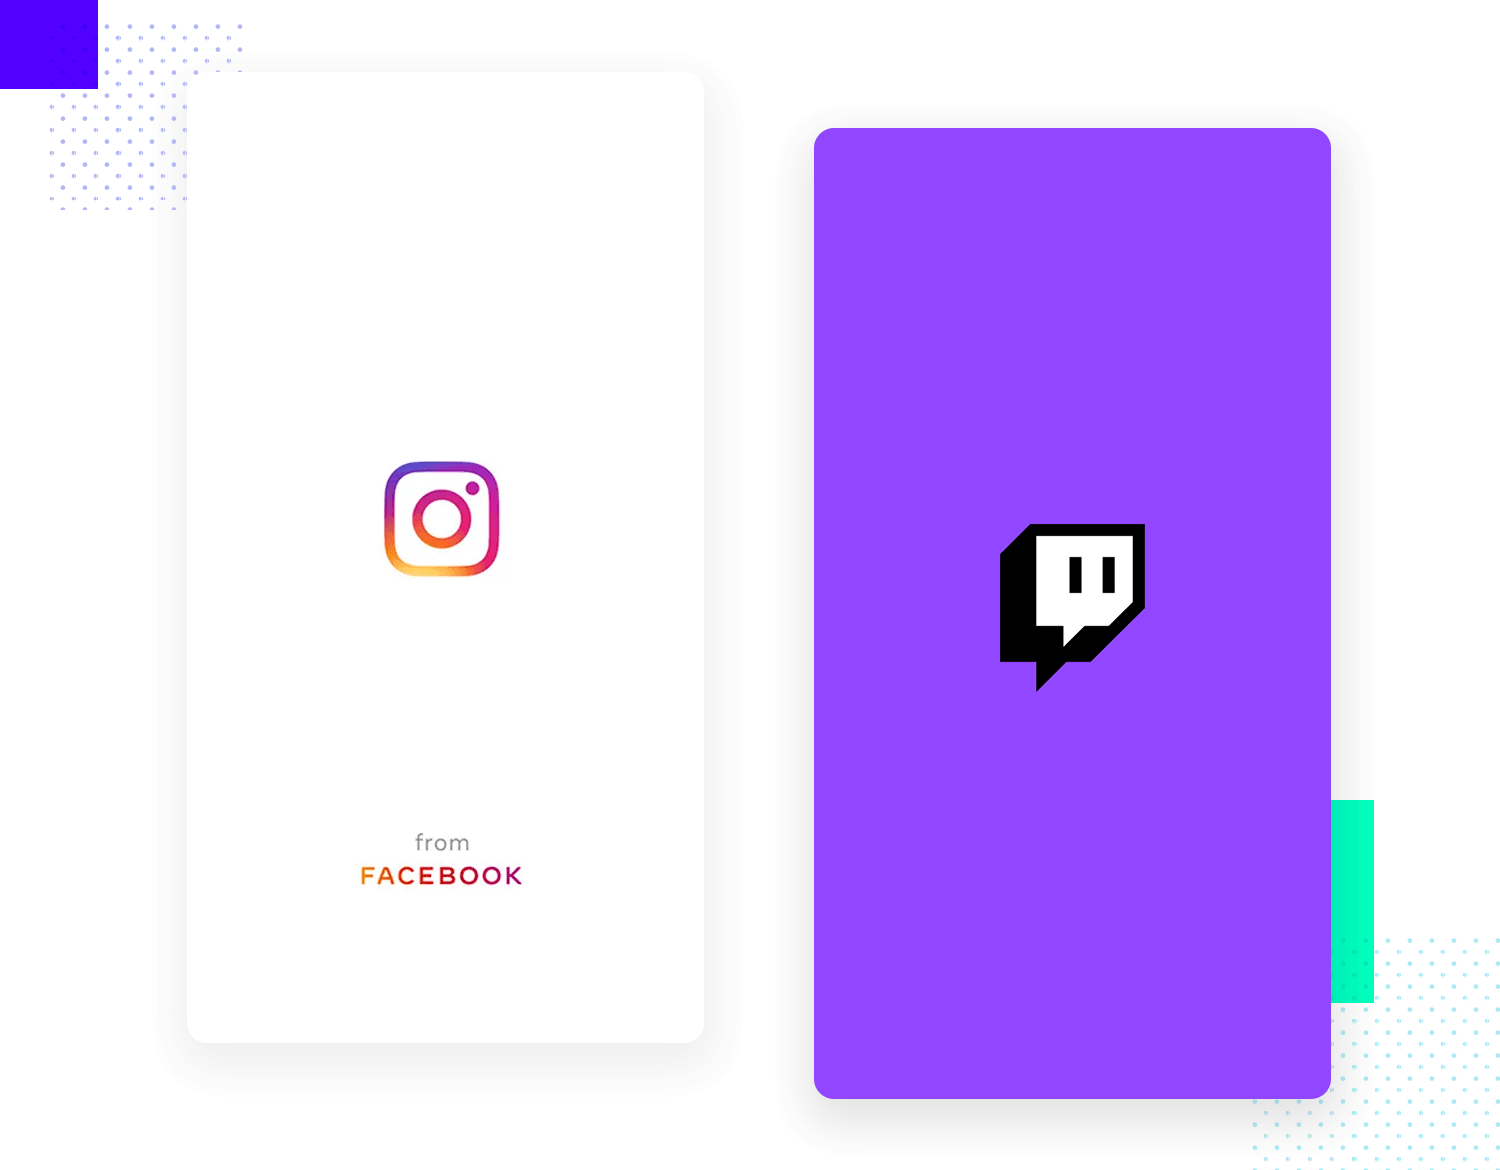 example of a couple of splash screens as ui design pattern